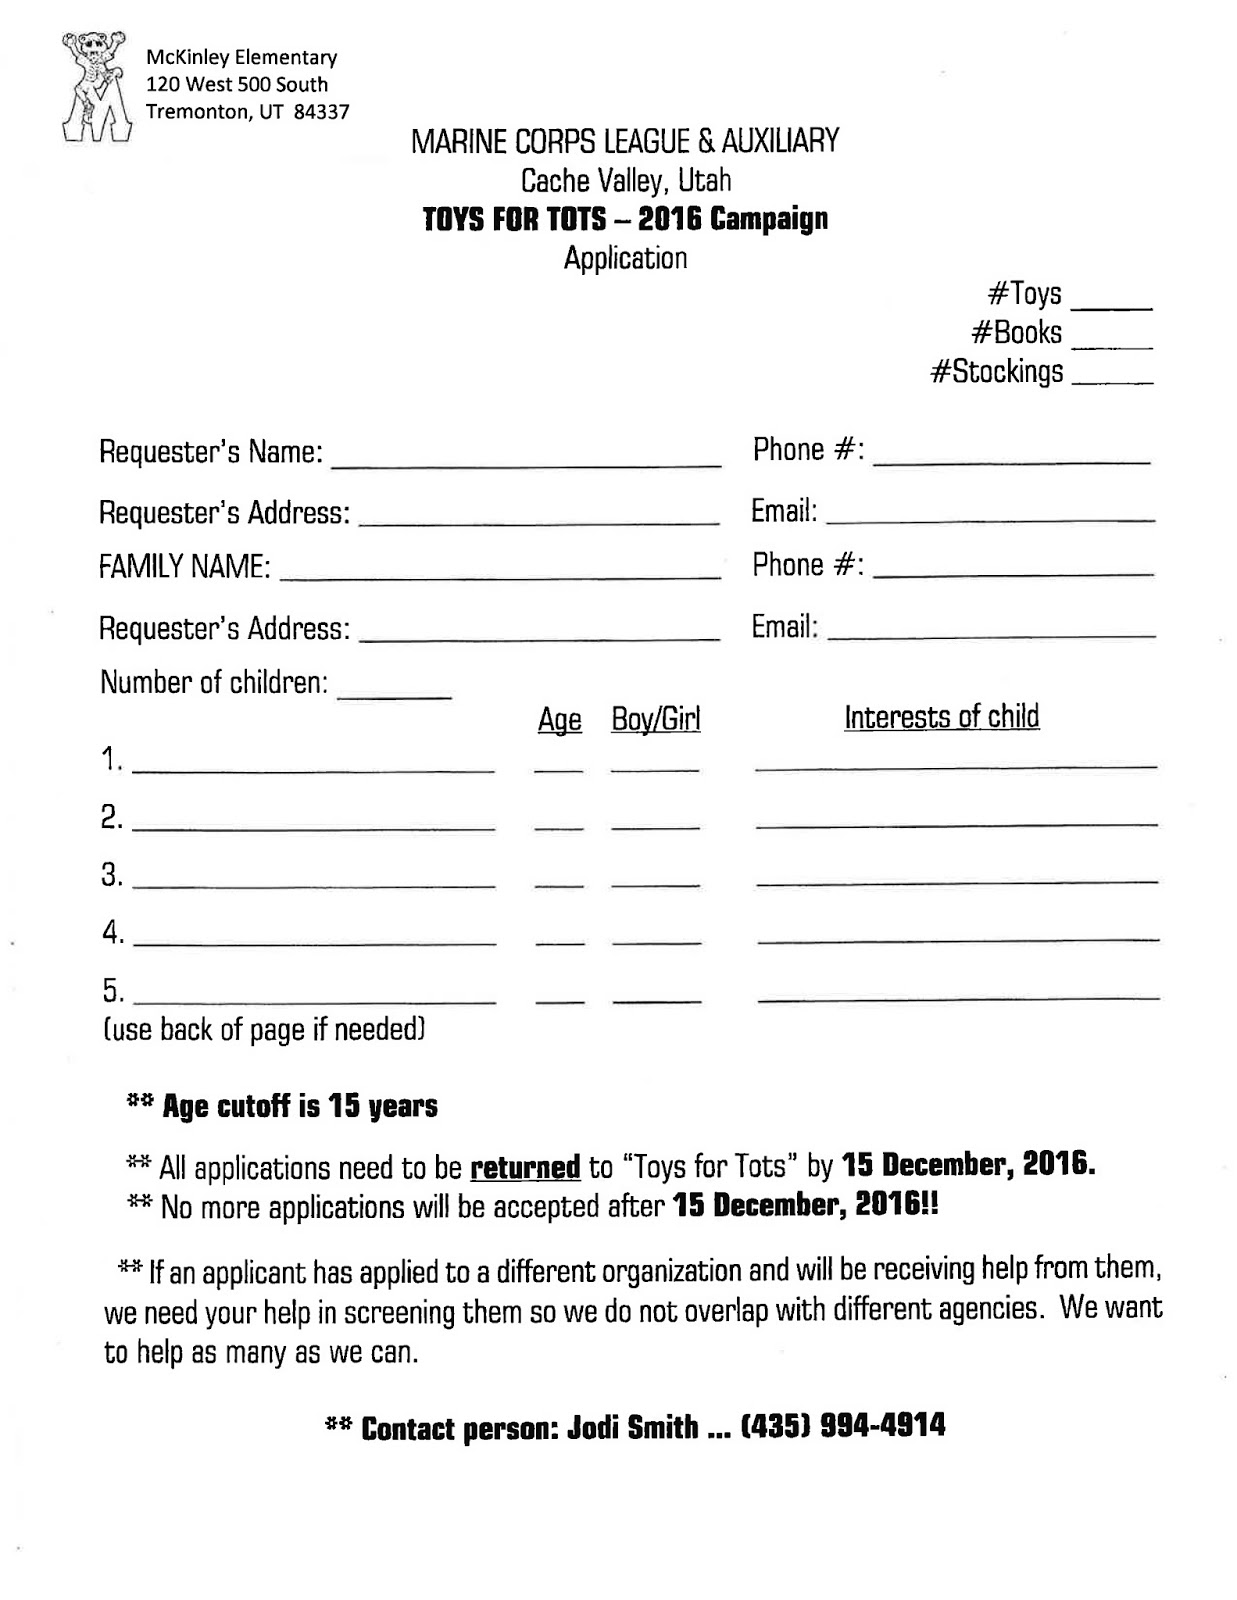 toys for tots 2017 application